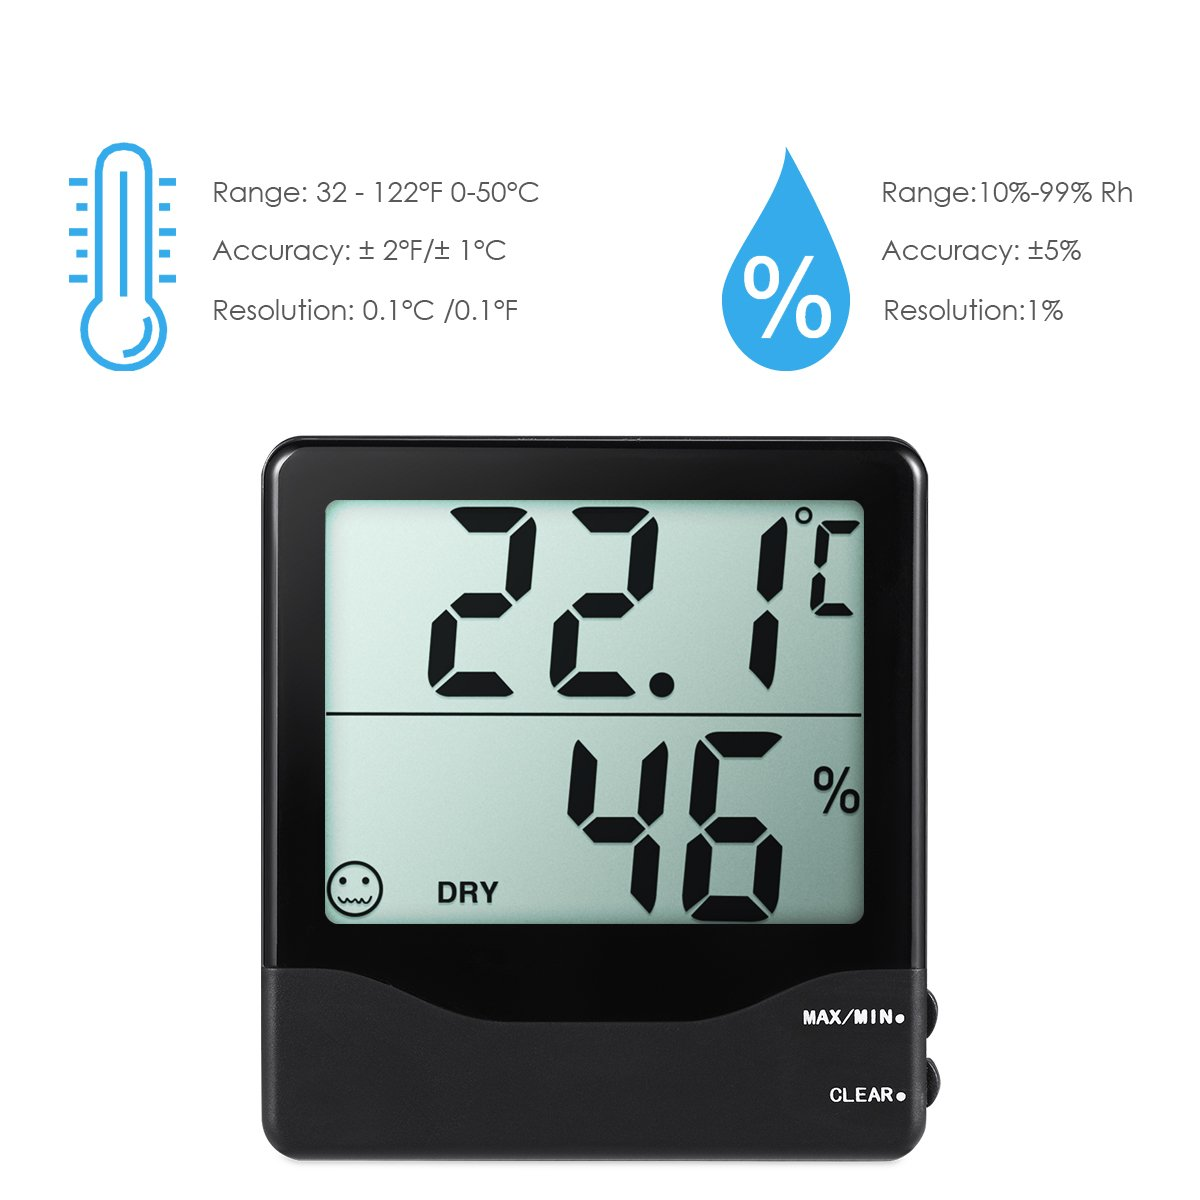 Amazon.com: AMIR Indoor Hygrometer Thermometer, Digital Temperature ...